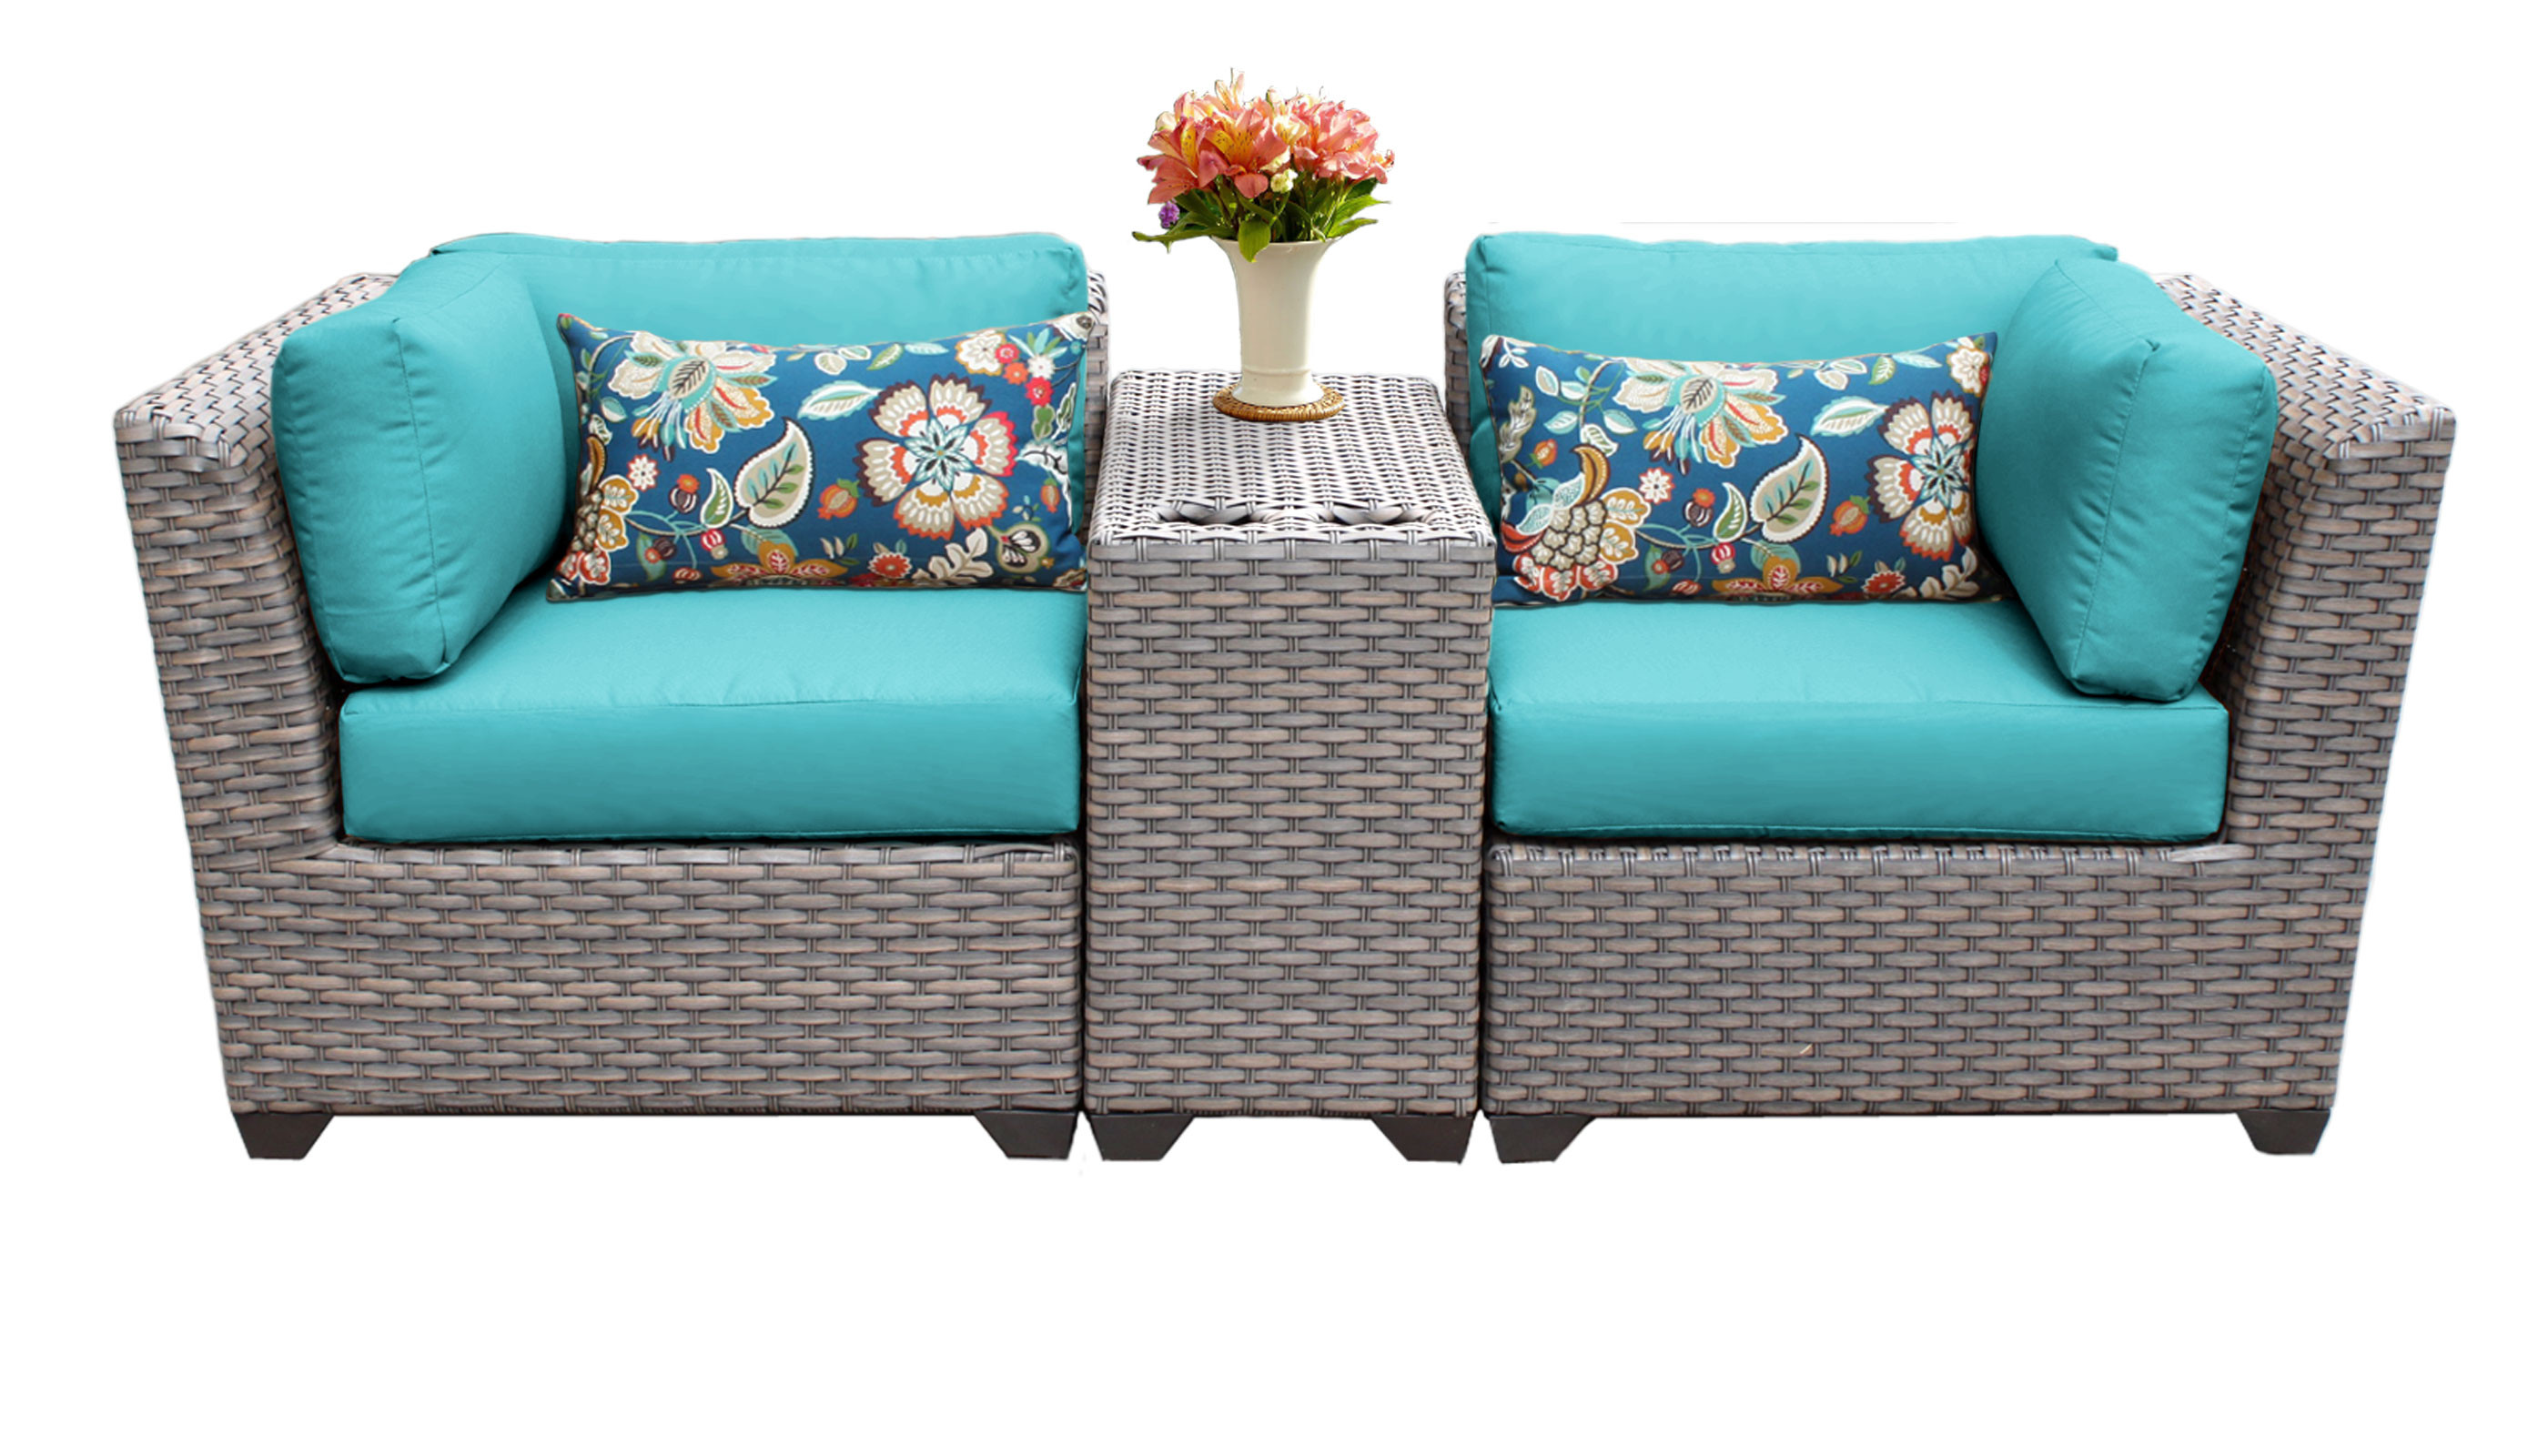 Best ideas about 3 Piece Patio Set . Save or Pin Catalina 3 Piece Outdoor Wicker Patio Furniture Set 03b 2 Now.